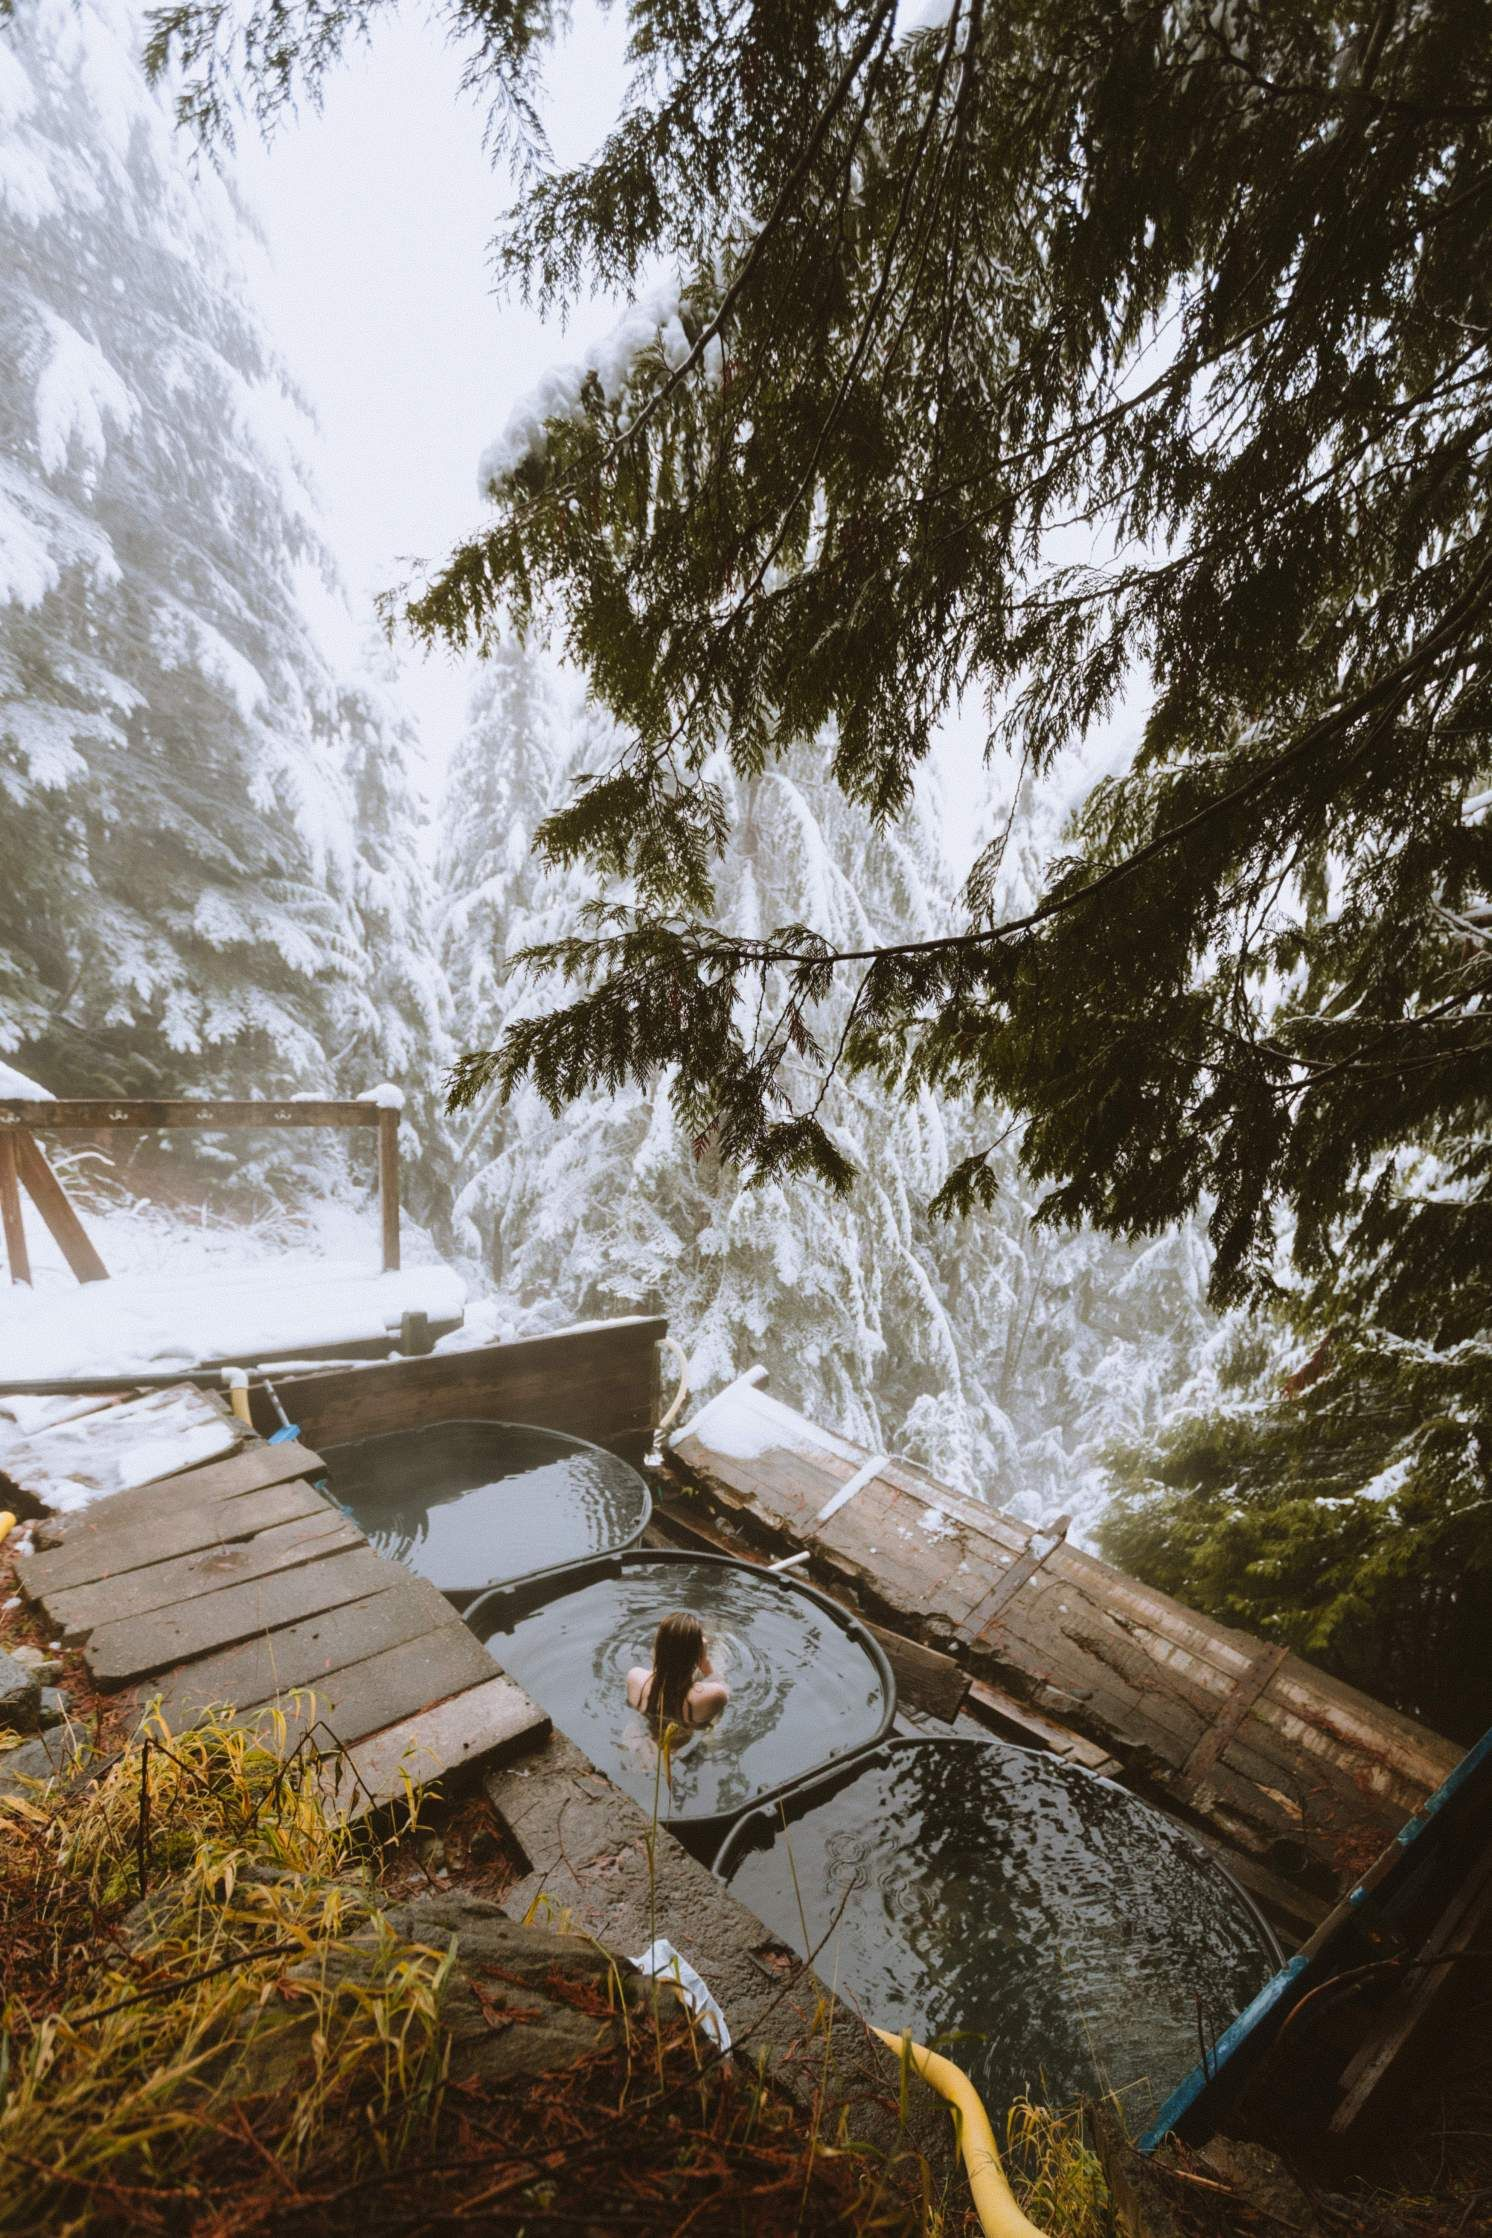 (Scenic Hot Springs) Hikes in Washington state are among the best in the nation! We're sharing forest covered trails, beach walks, stunning views, and opportunities to get outside and explore the Pacific Northwest. Save this list for your next PNW adventure! #hiking #washington #PNW #PacificNorthwest #trails #mountain #outdoors #lake #friends #travel #adventure #pacific #westcoast